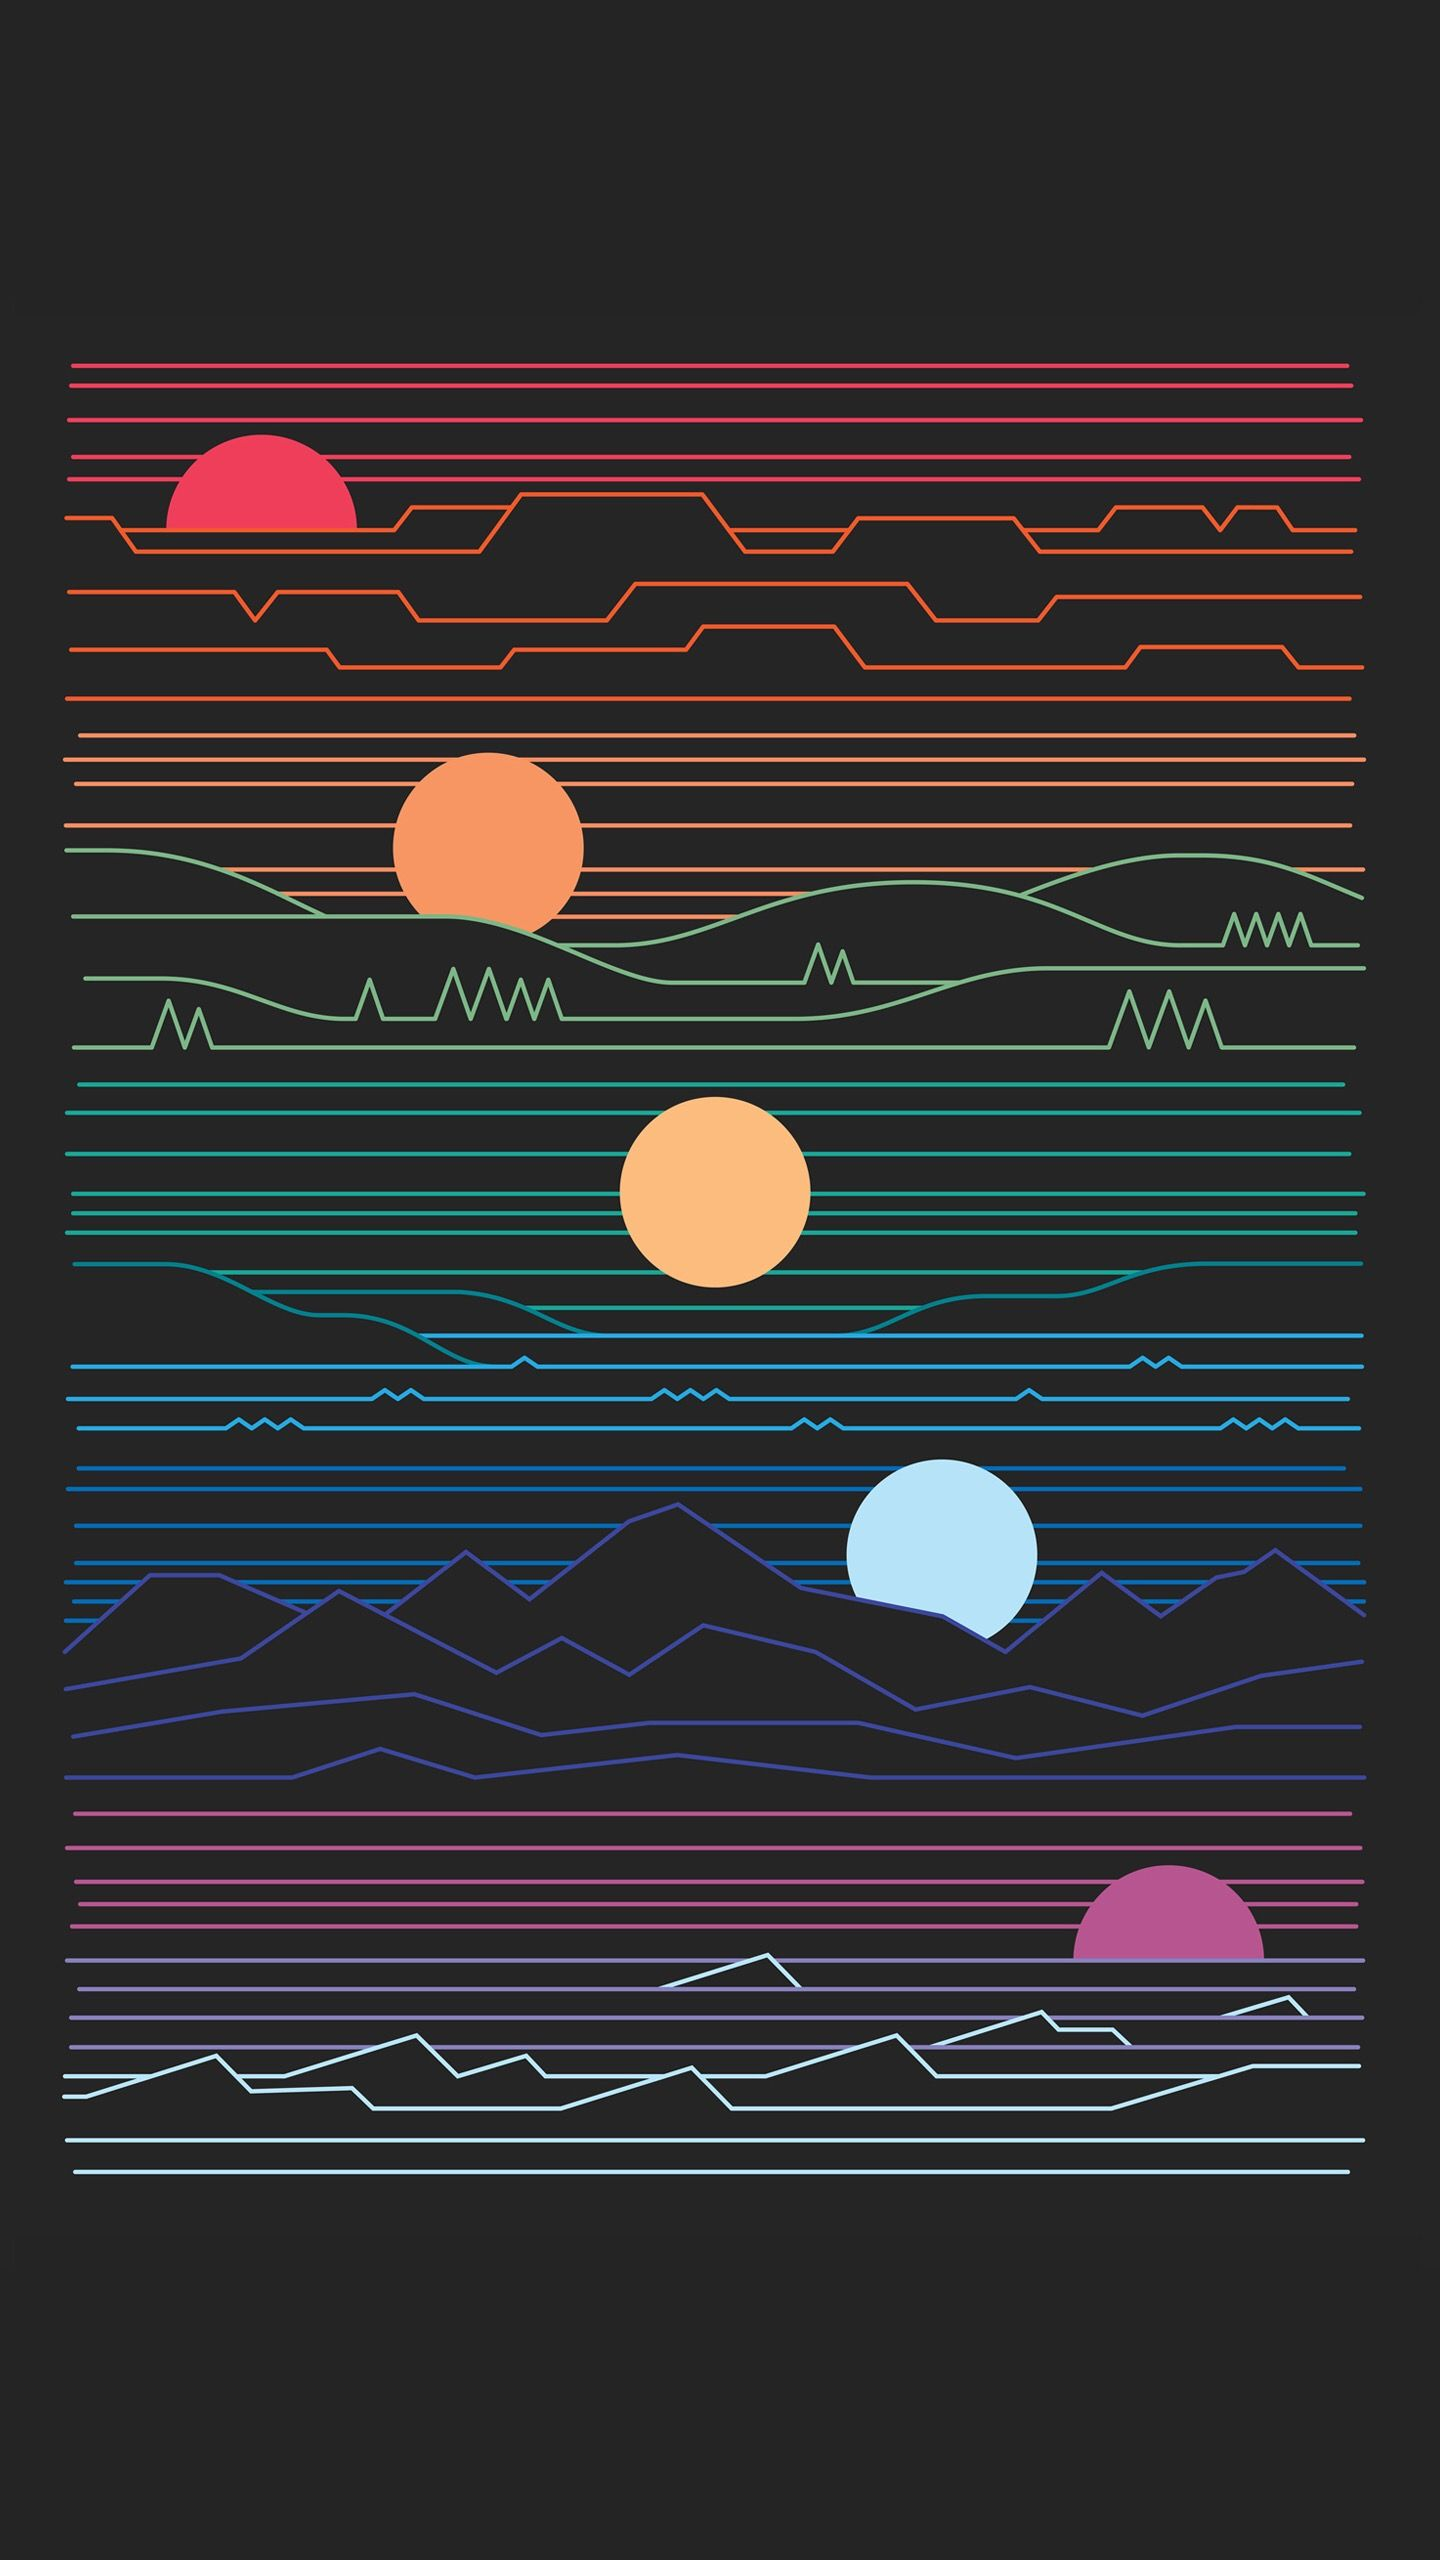 Pin By Jasmin Trevino On Phone Wallpapers Aesthetic Iphone